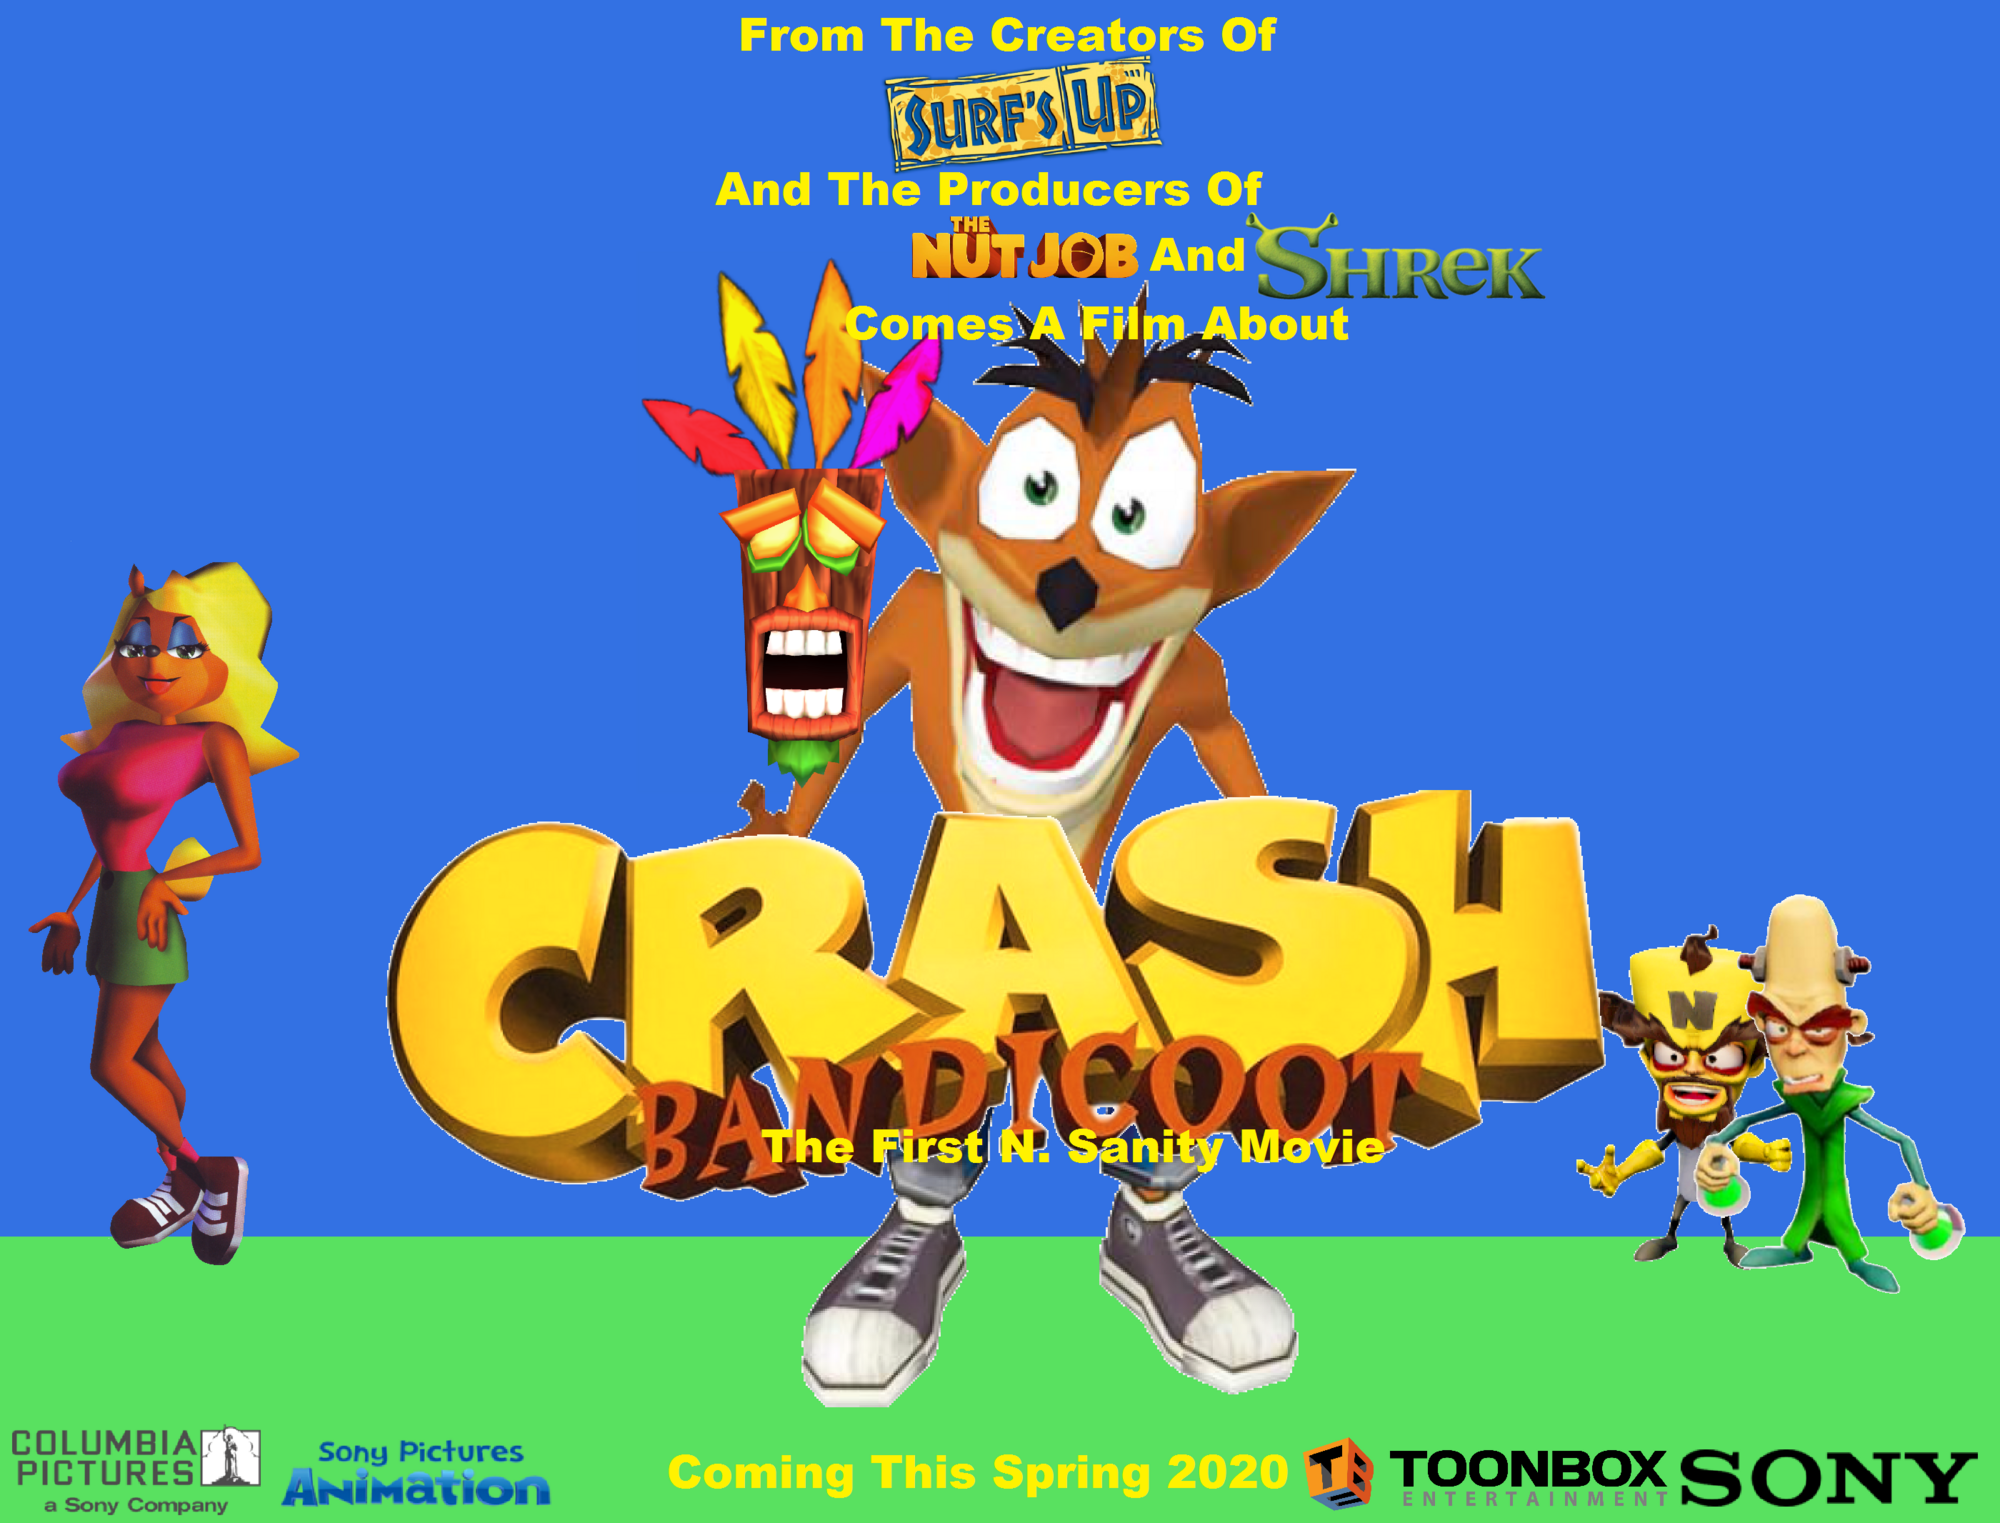 2020 Movie Posters: Crash Bandicoot The First N. Sanity Movie (2020 Film